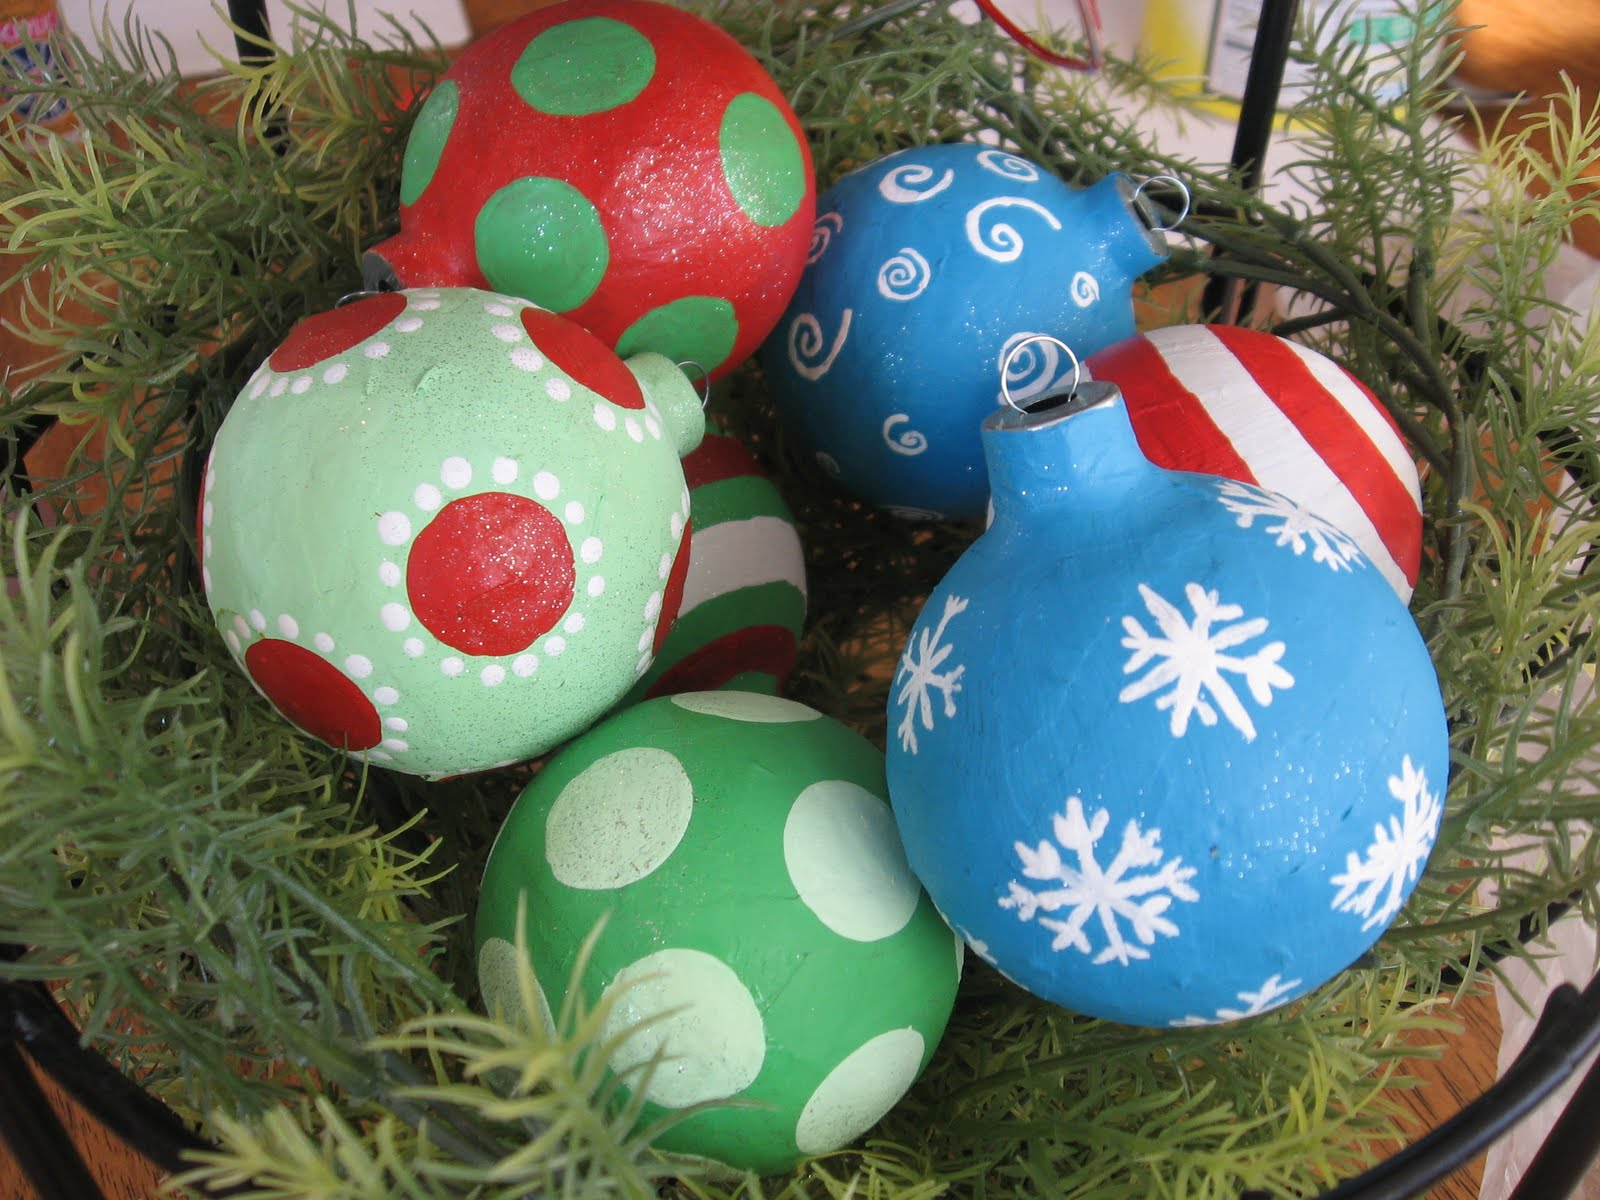 Top 30 crafty paper mache projects you can try for yourself 17 christmas balls from blue cricket designs solutioingenieria Choice Image